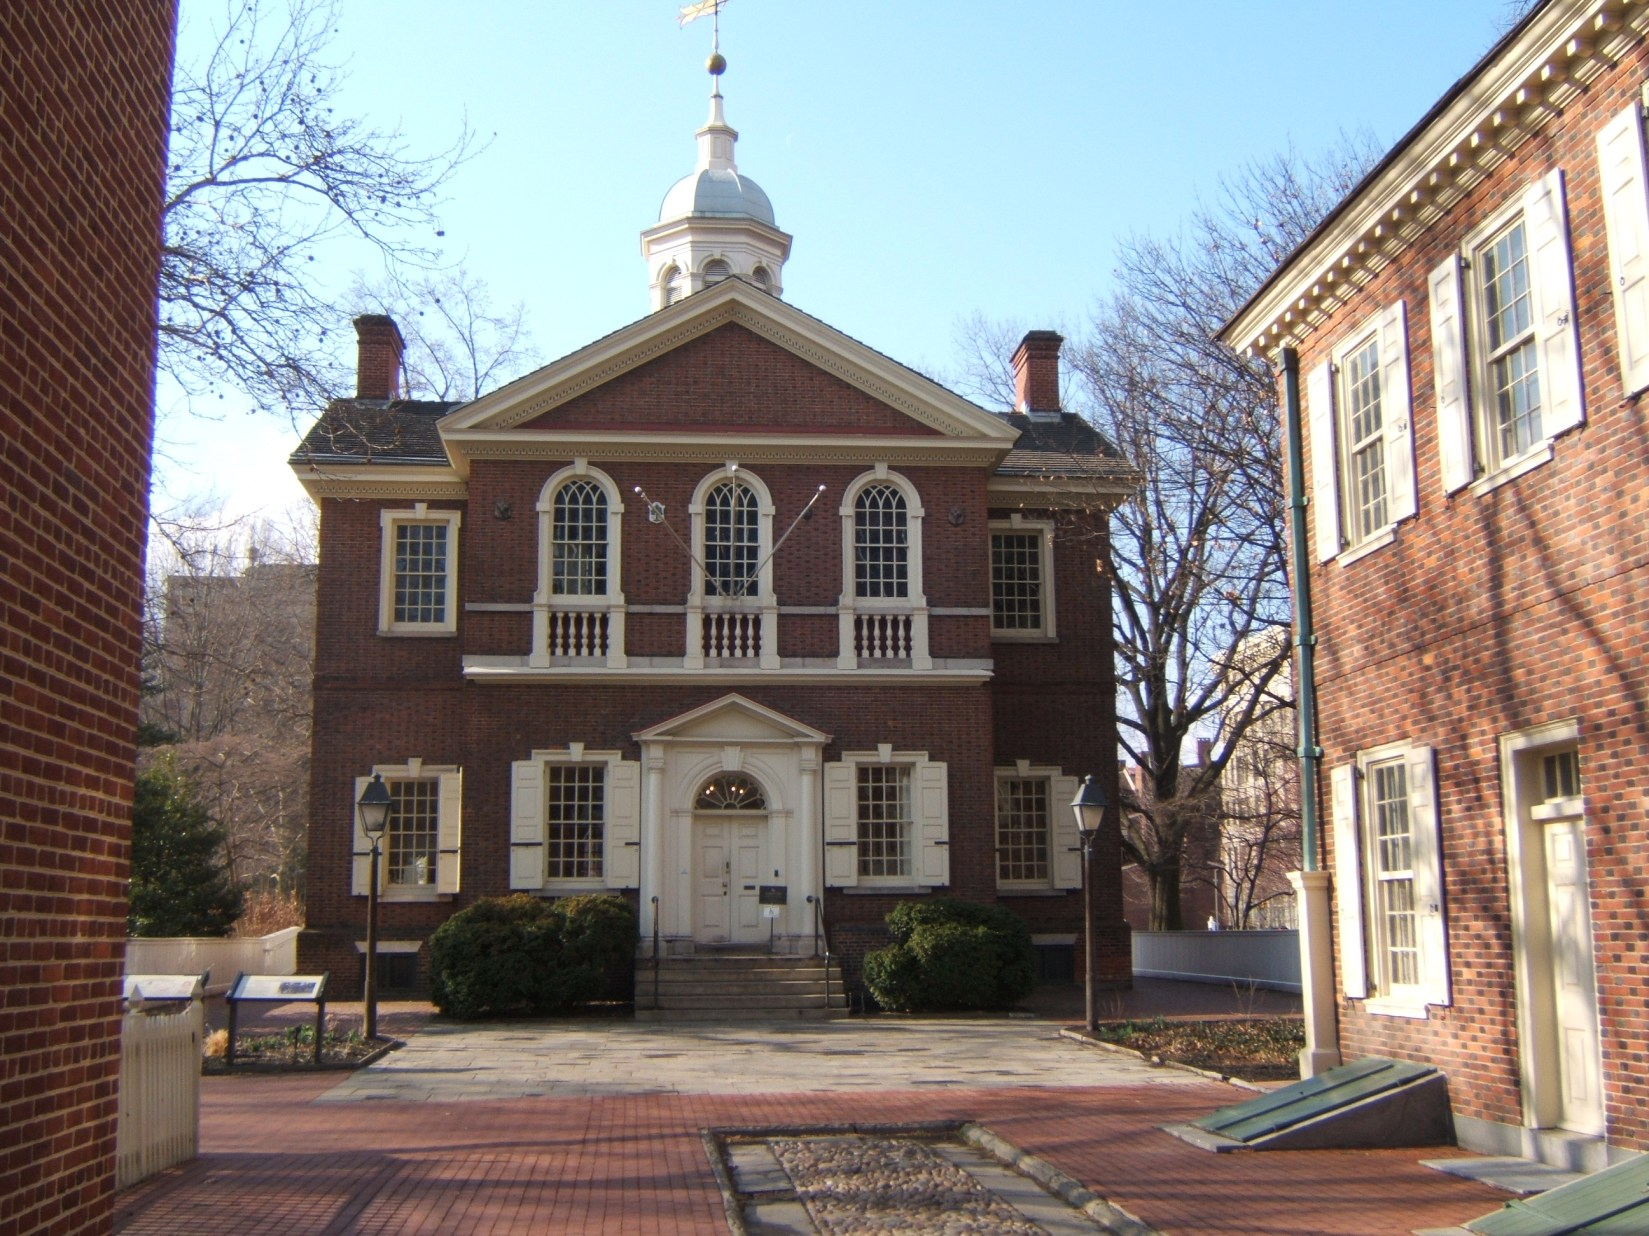 Carpenter's Hall, where the first Continental Congress met, September 25, 1774. President Coolidge commemorated the 150th anniversary of that meeting here in 1924.